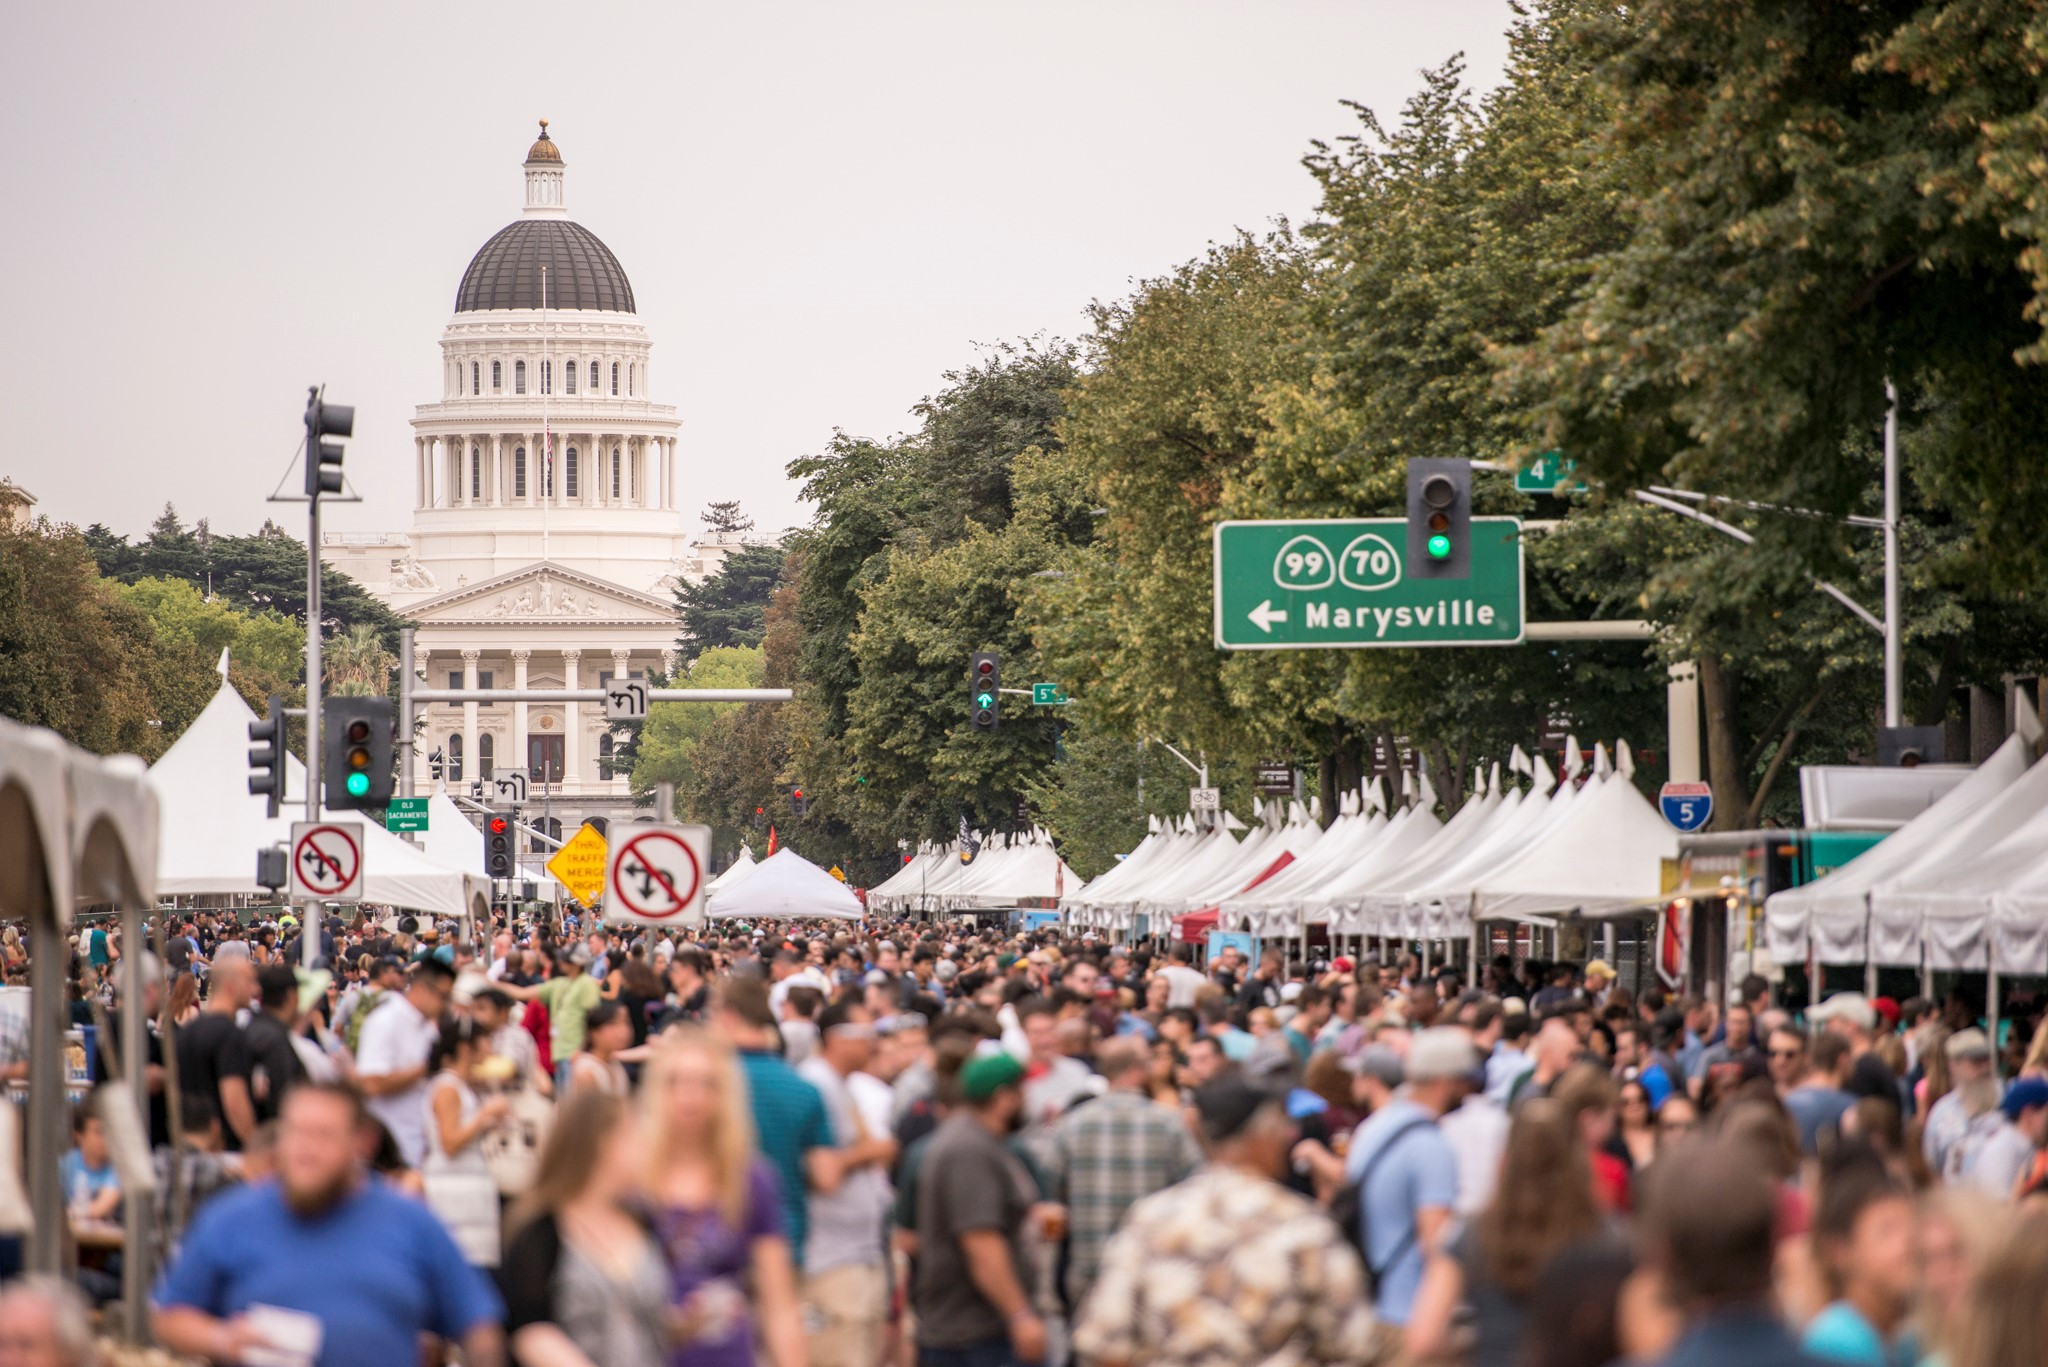 View of the California State Capitol building from the California Craft Beer Brewfest